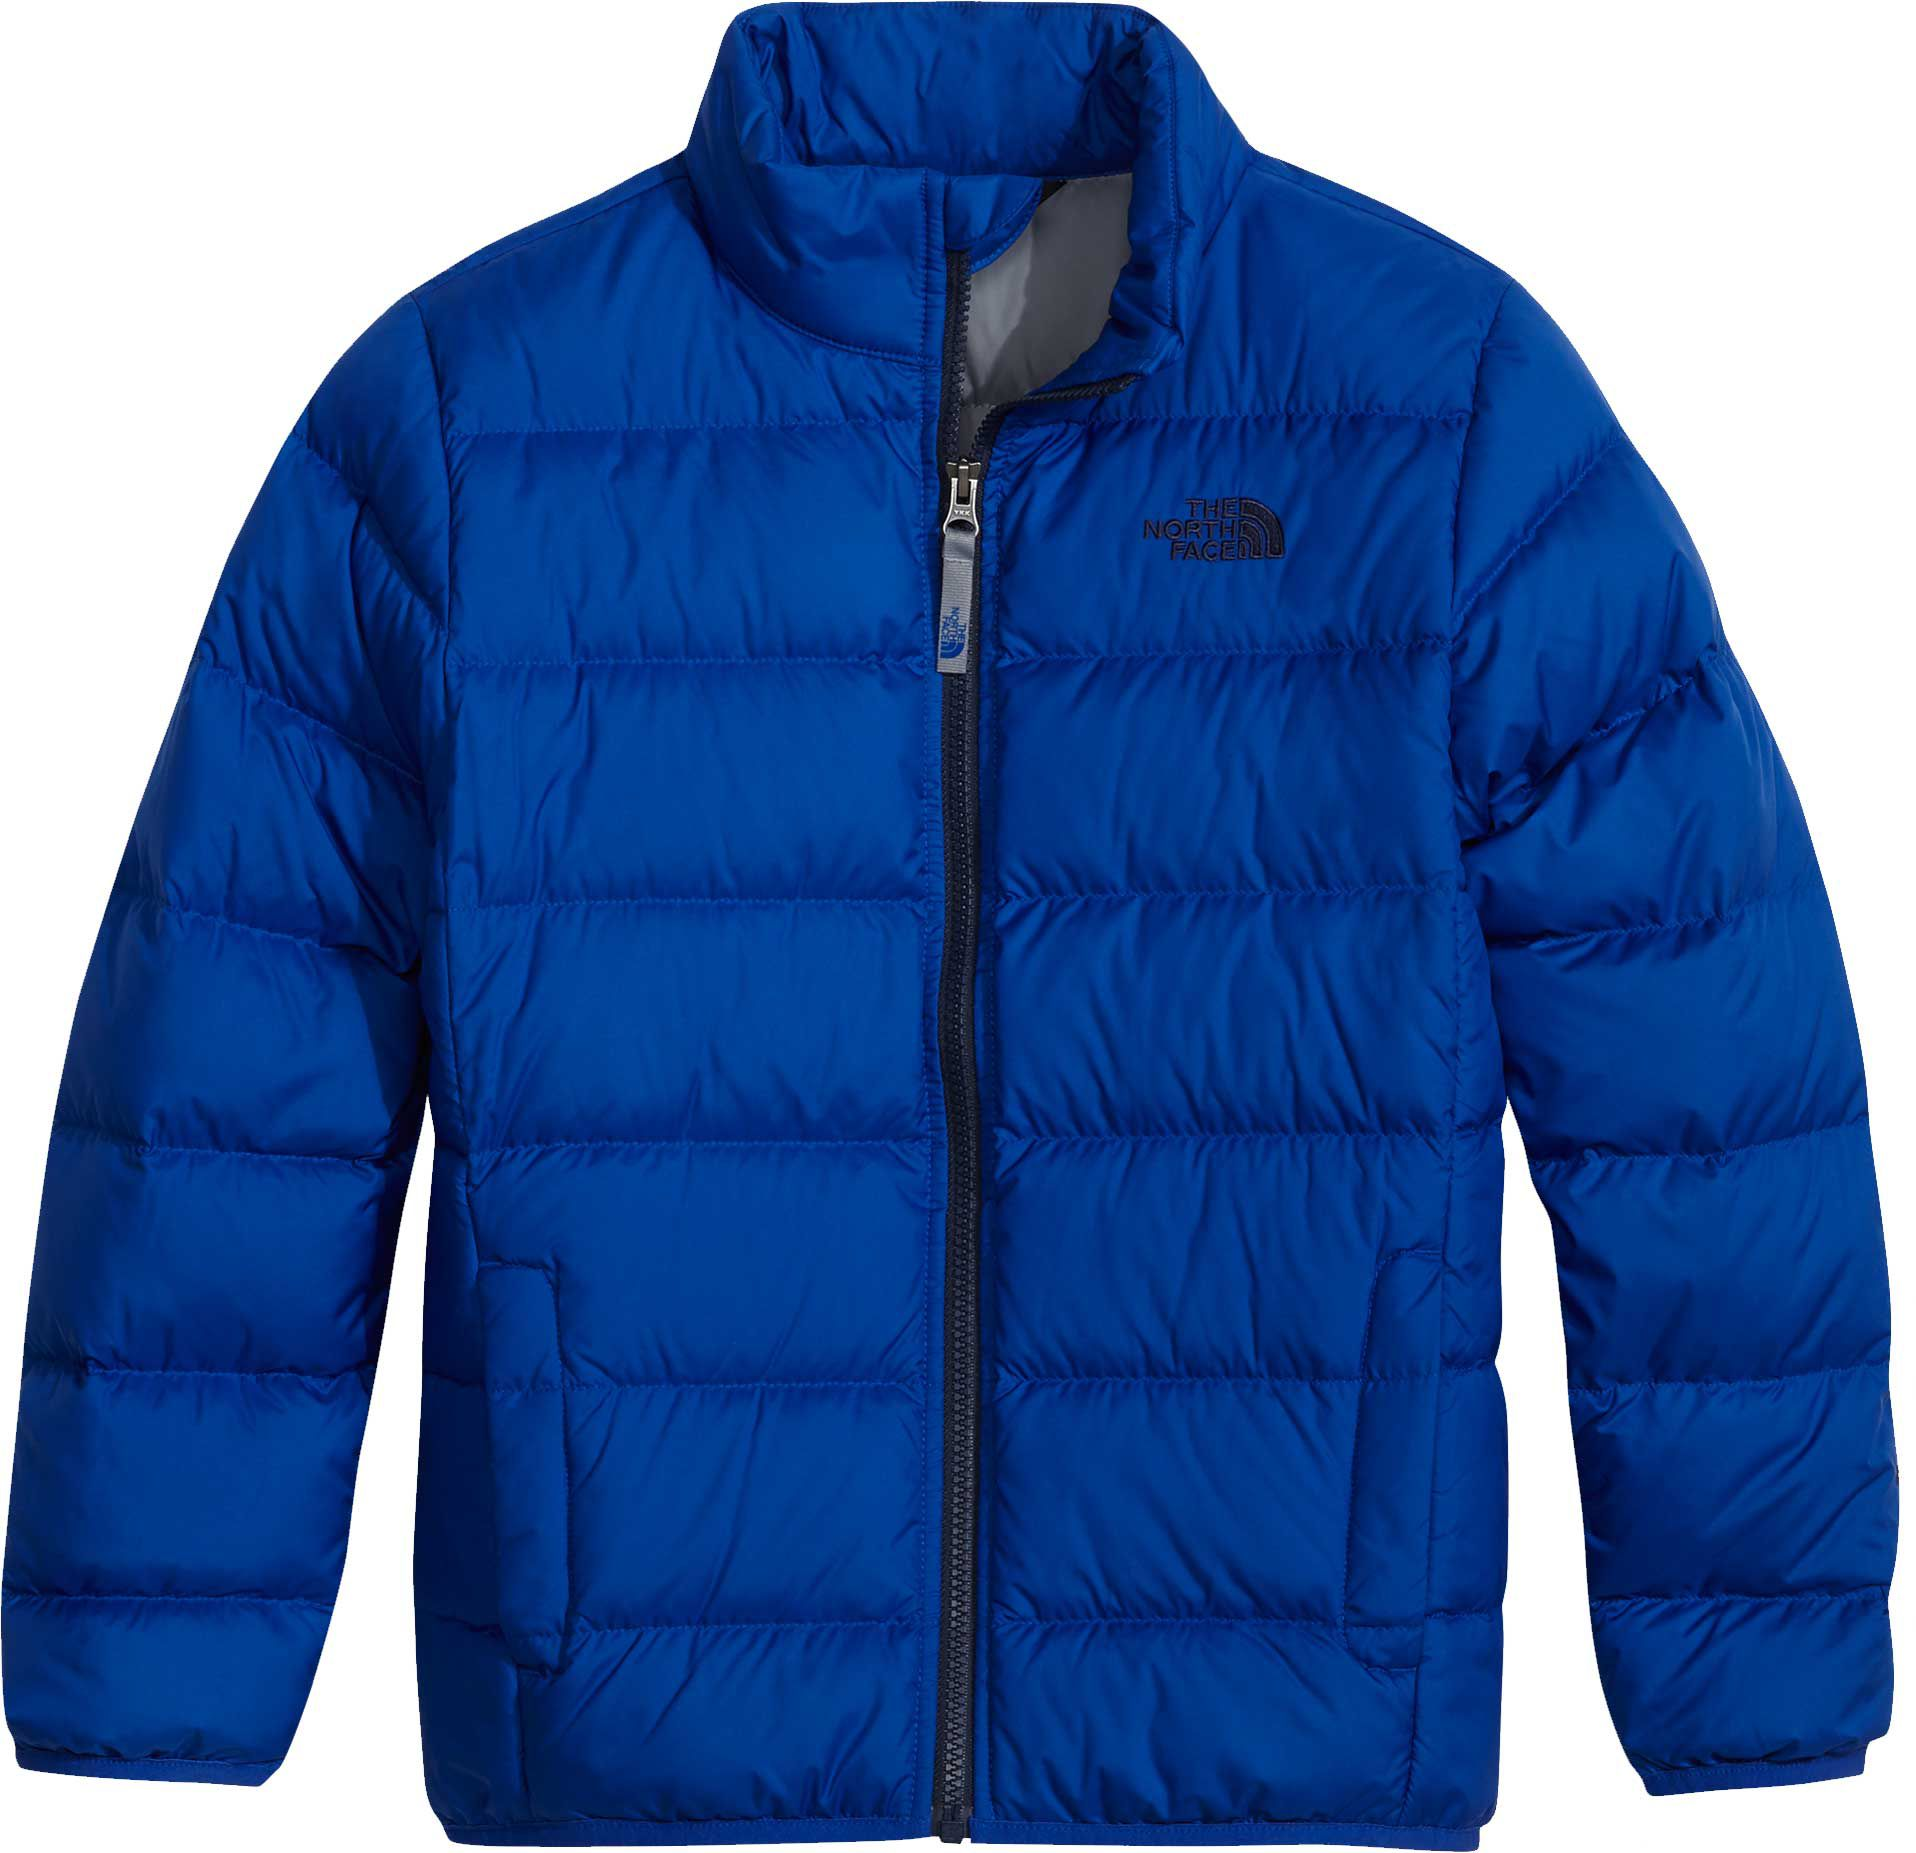 the north face boys andes down jacket dick s sporting goods #2: 16tnobbndsjckt apo bright cobalt blue is